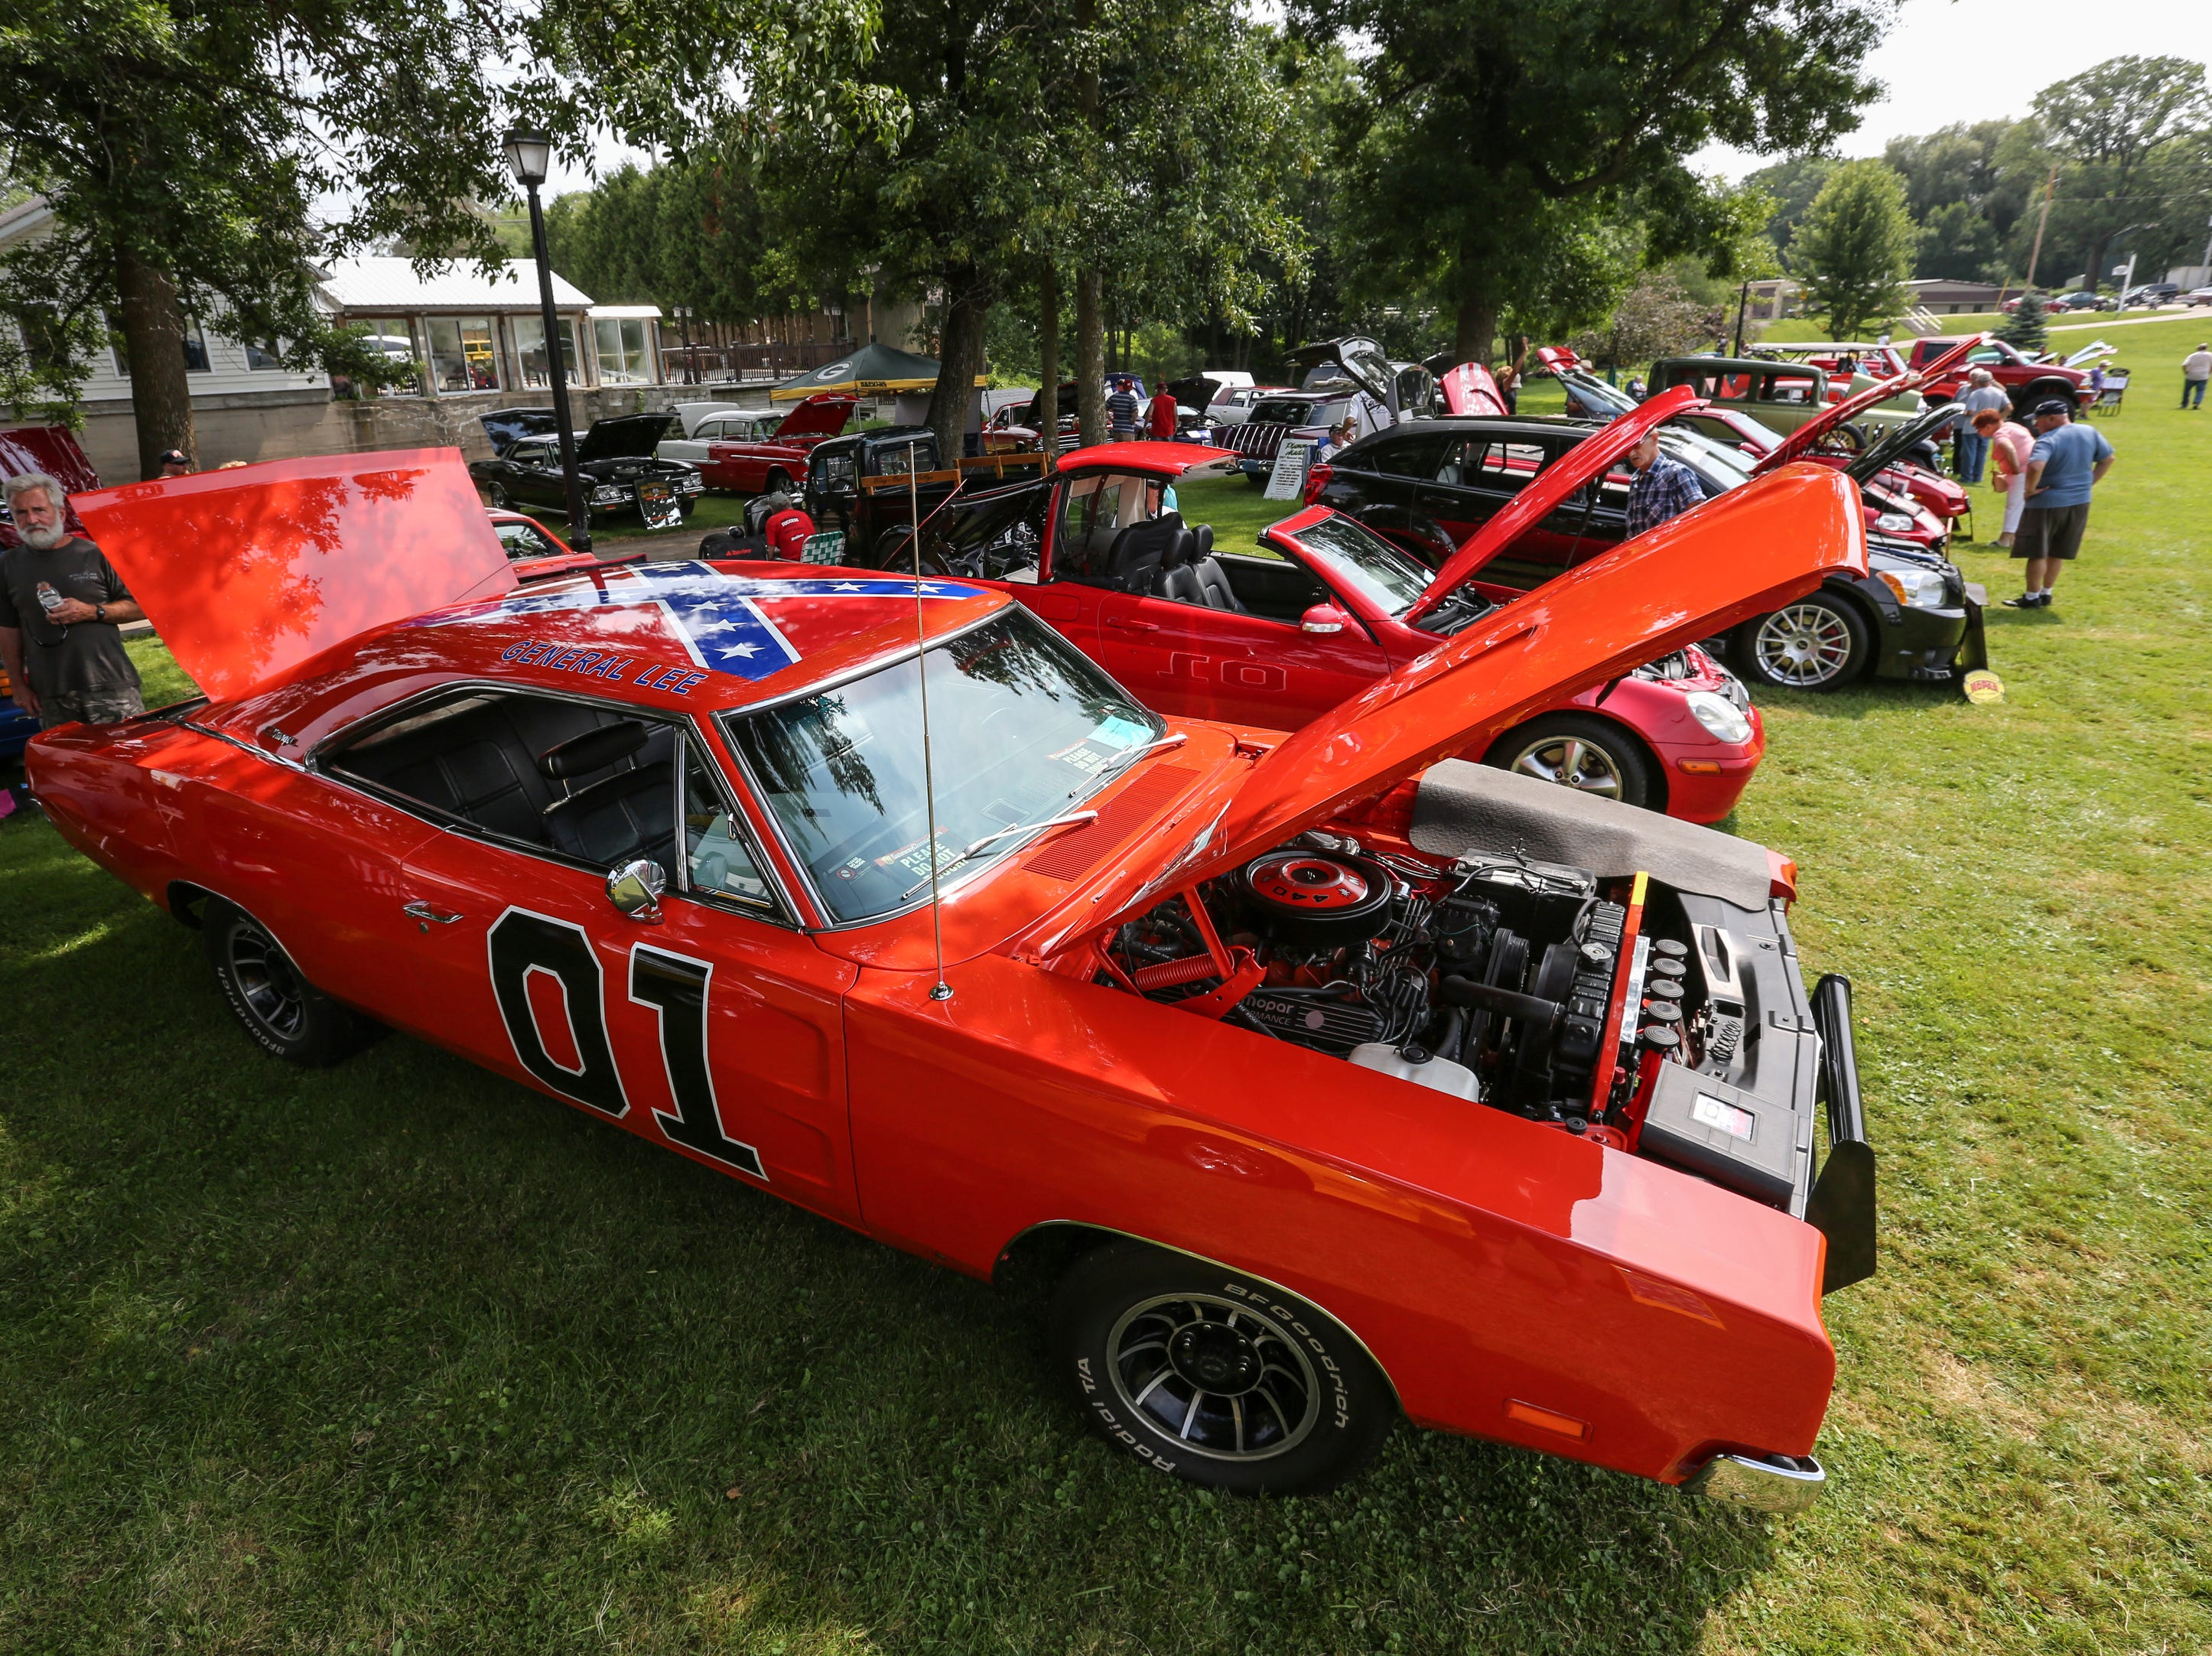 A Dodge Charger painted to look like General Lee from Dukes of Hazard sits on display at the car show during Mishicot Riverfest Saturday, August 4, 2018, in Mishicot, Wis. Josh Clark/USA TODAY NETWORK-Wisconsin